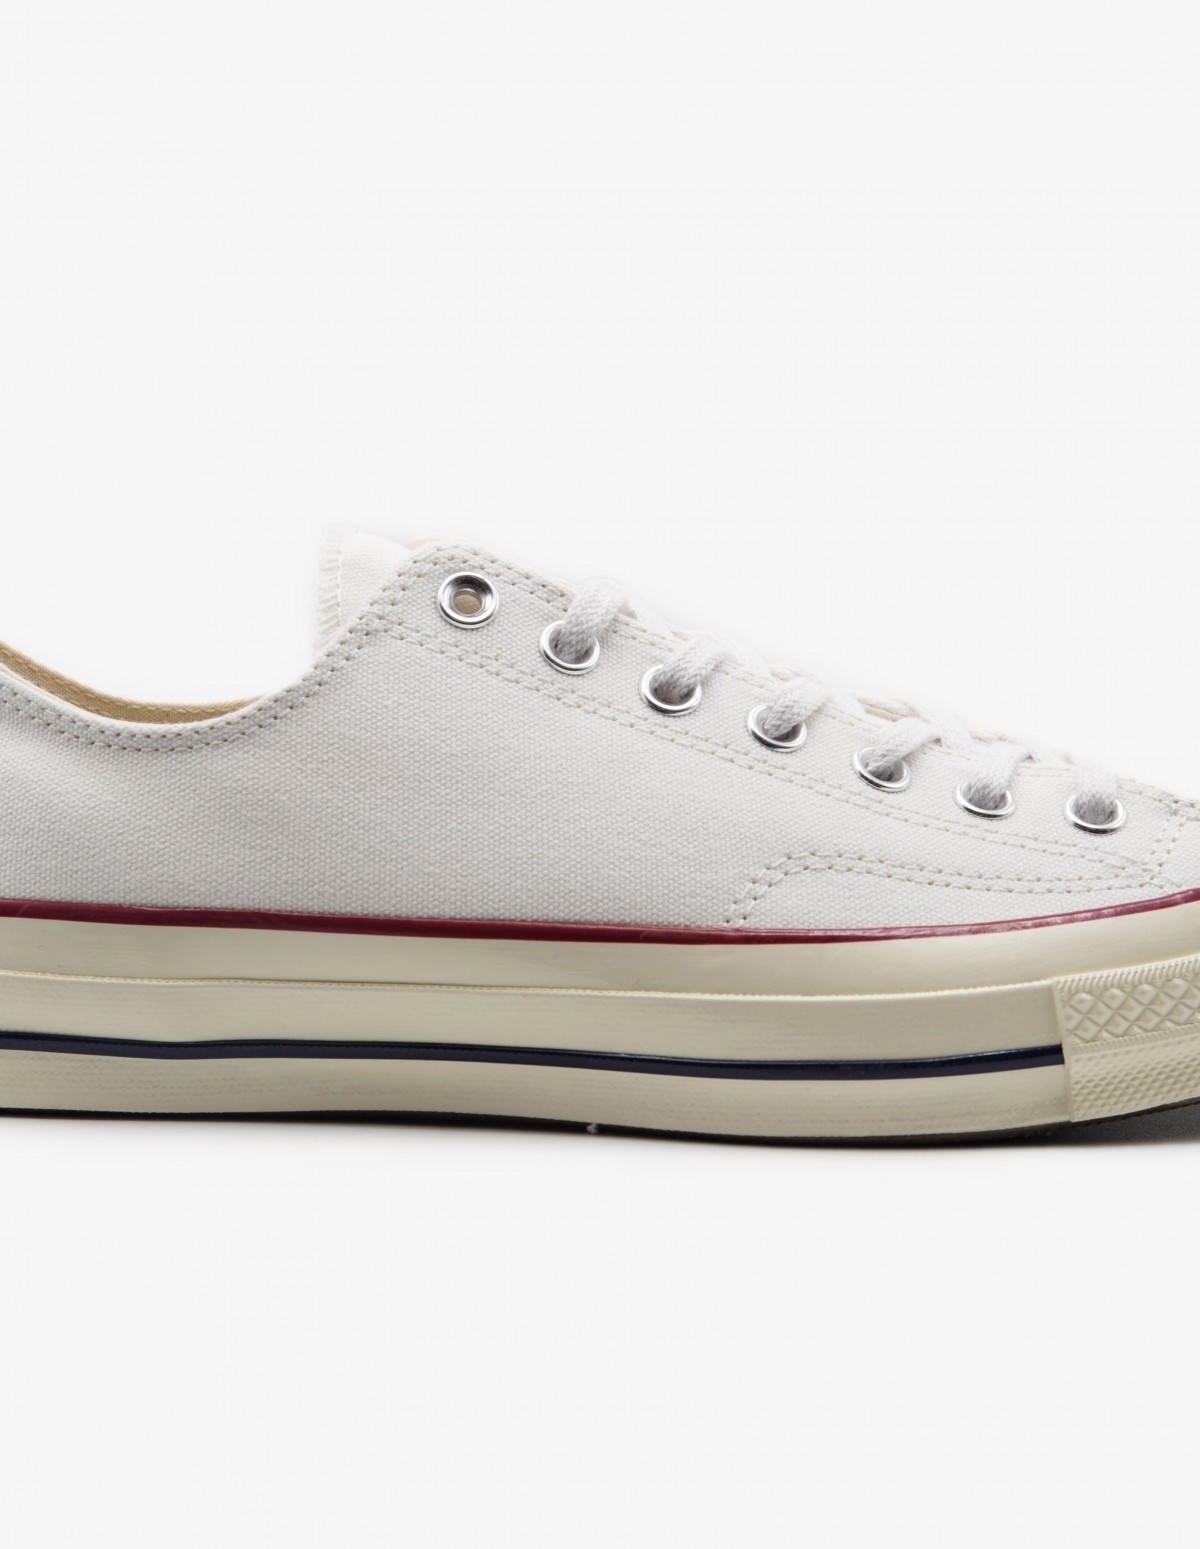 Converse Chuck Taylor Low OX All Star '70 in White